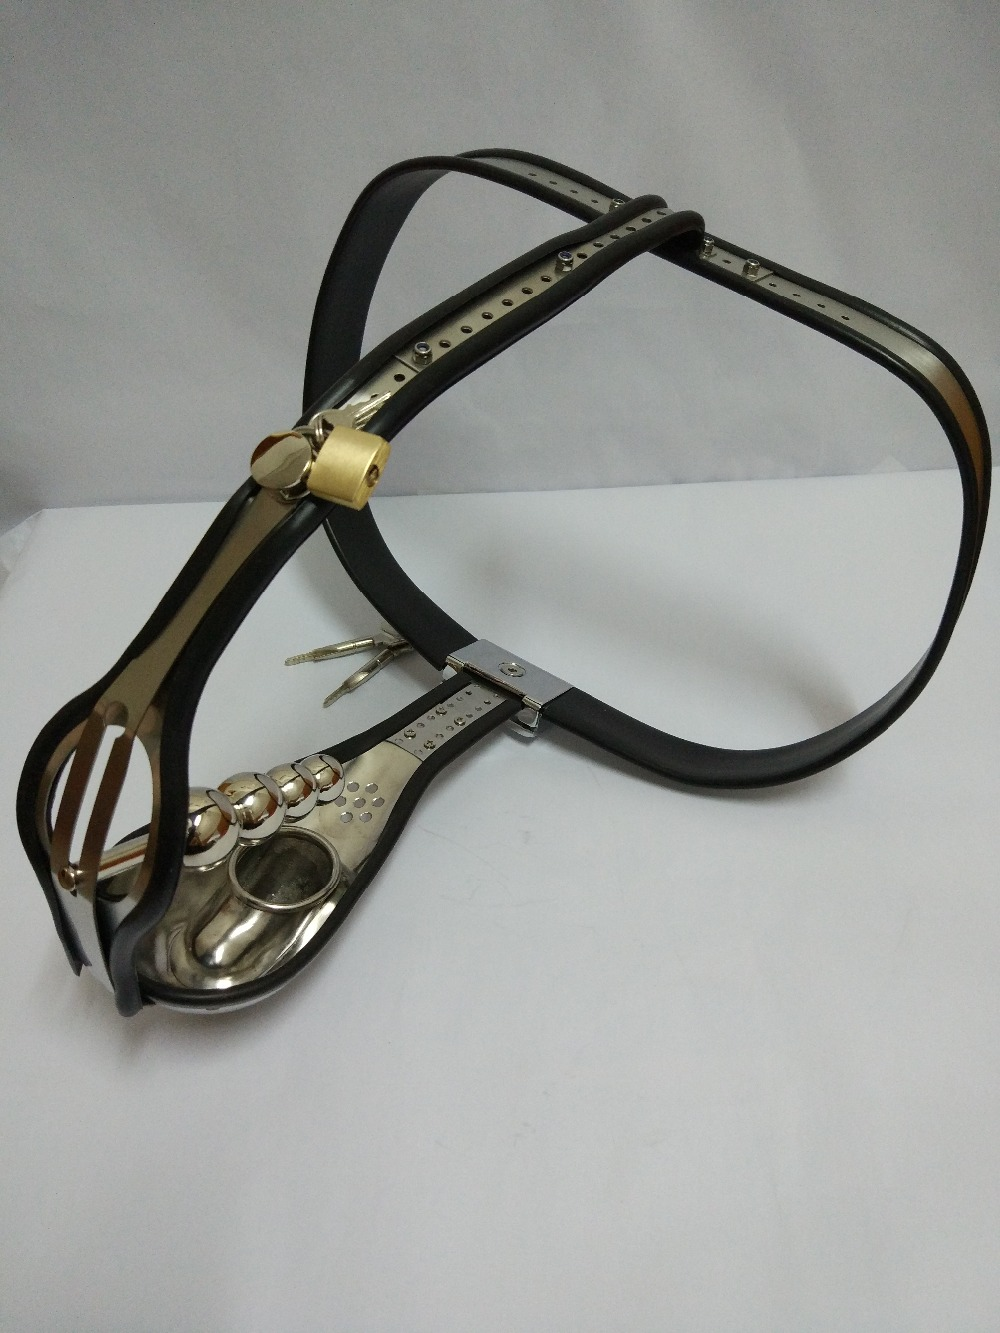 products sex shop stainless steel design male chastity belt cock cage anal plug sex toys bdsm bondage set sexy sextoys for men. sex shop small male penis confinement chastity cage metal cock ring cockring chastity belt toy sex toys for men free shipping